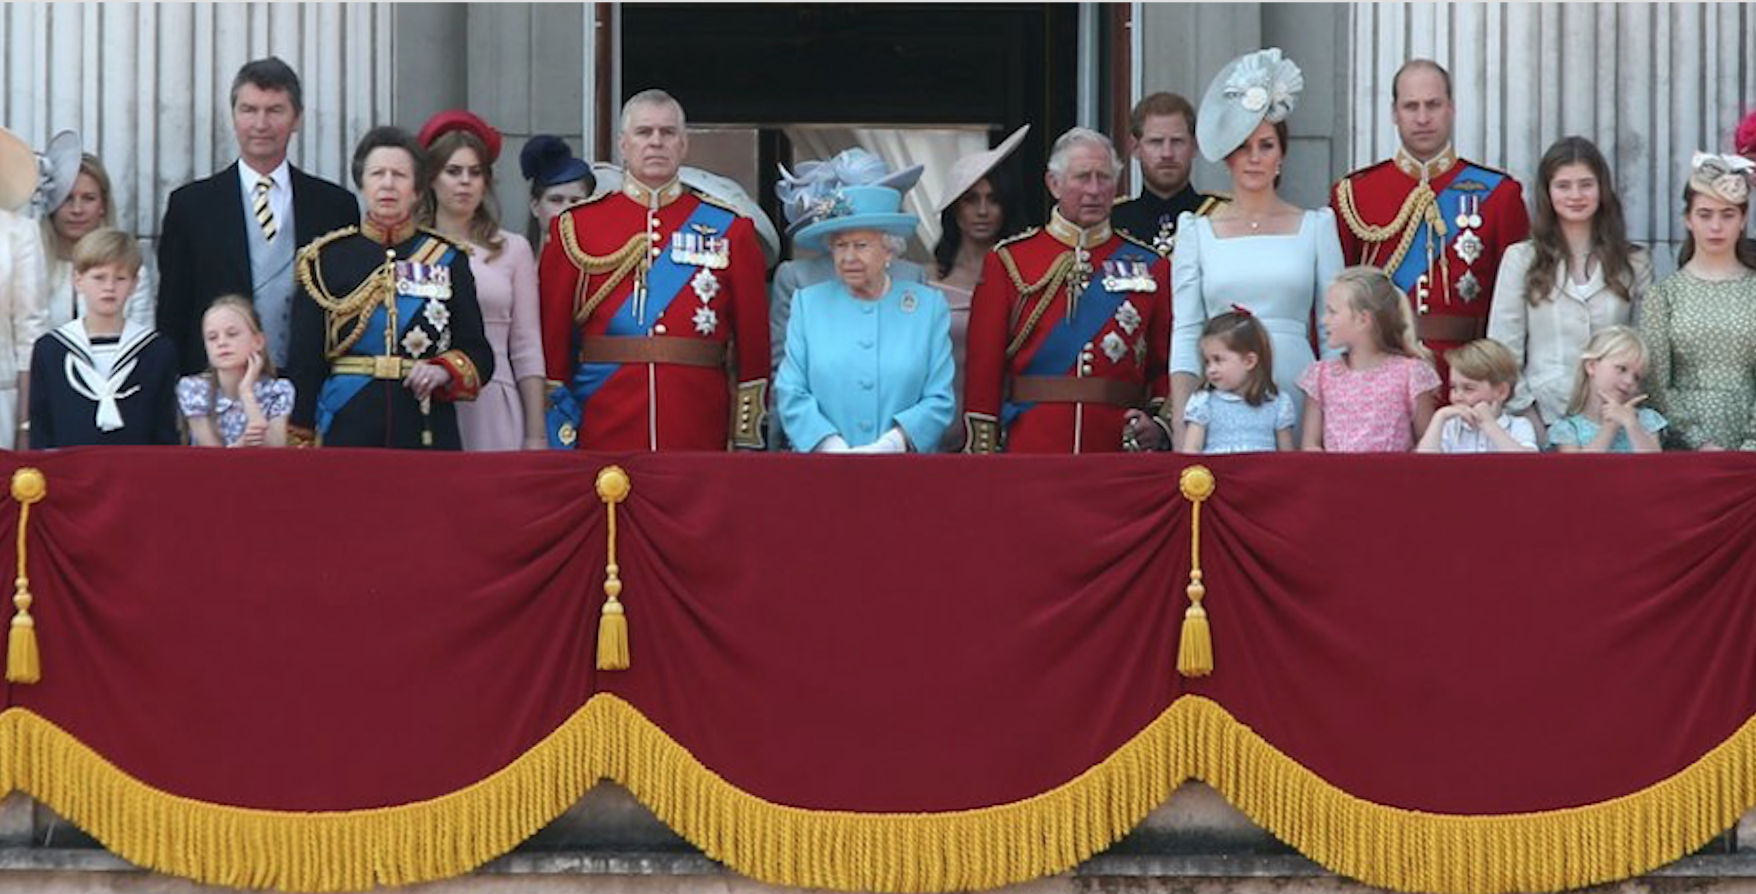 Harry and Meghan on the balcony with the royals - Trooping the Colours 2018 Queen birthday